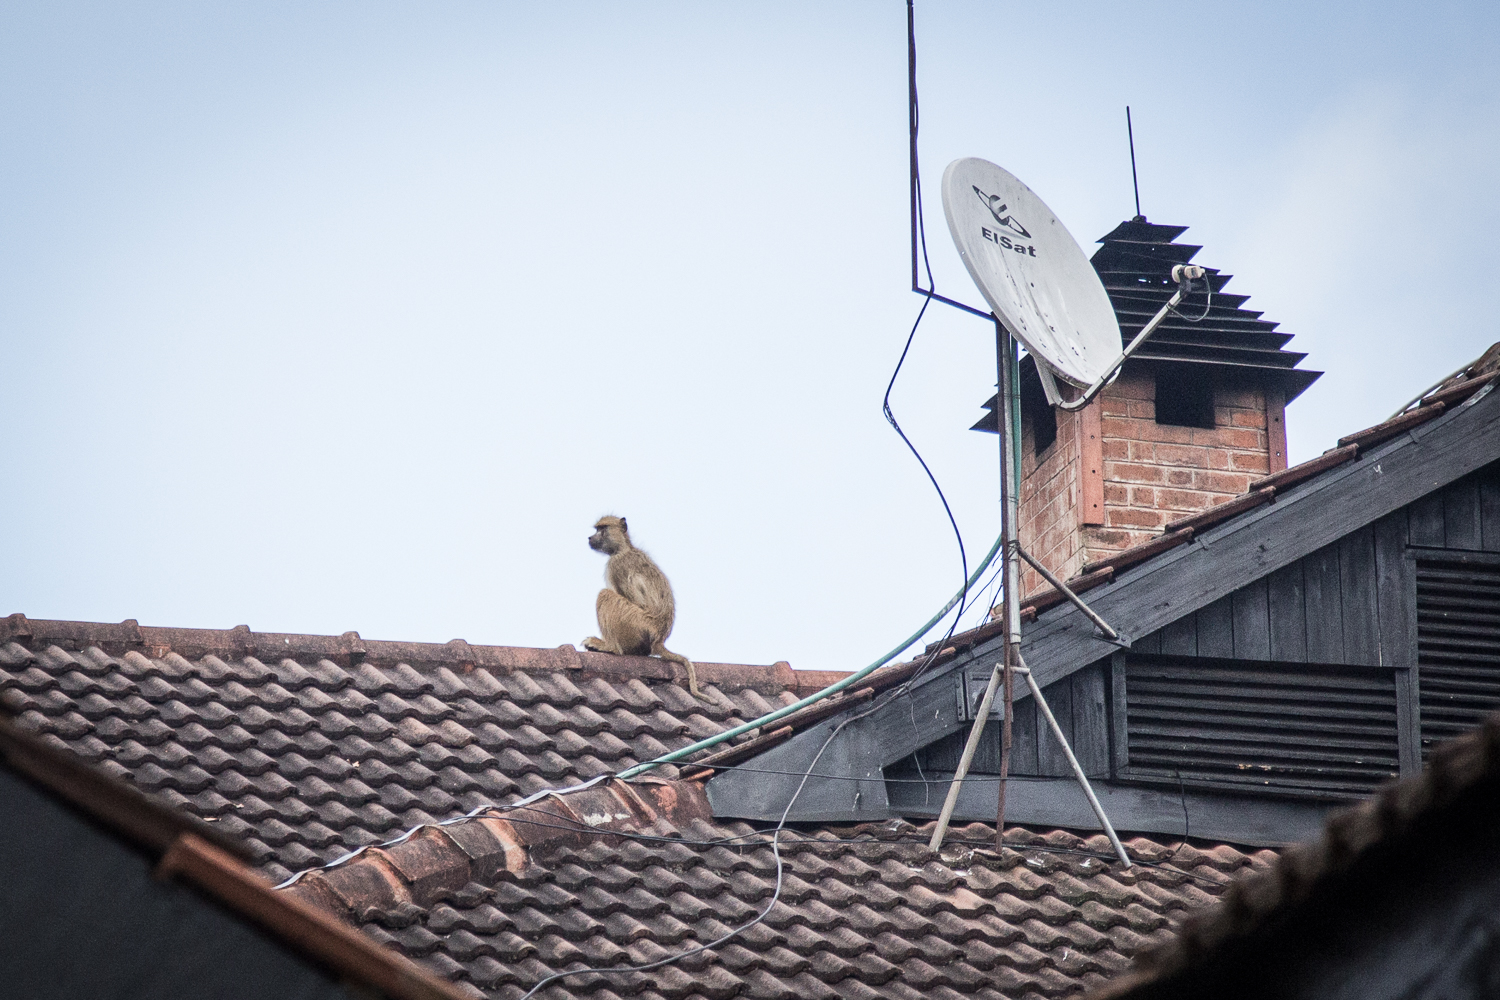 A baboon sits on top of a hotel at the start of our plateau hike.